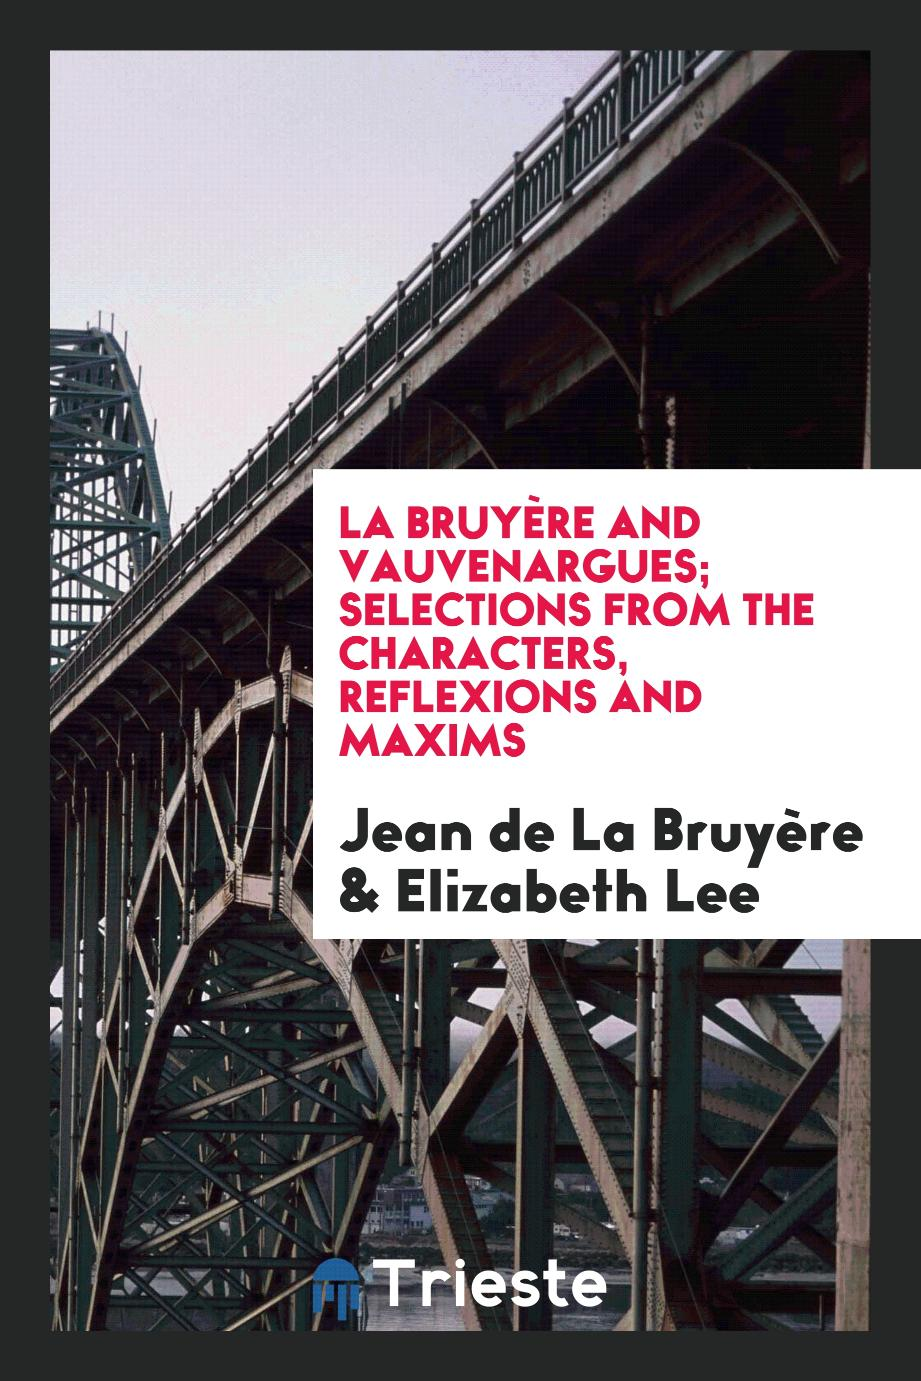 La Bruyère and Vauvenargues; Selections from the Characters, Reflexions and Maxims